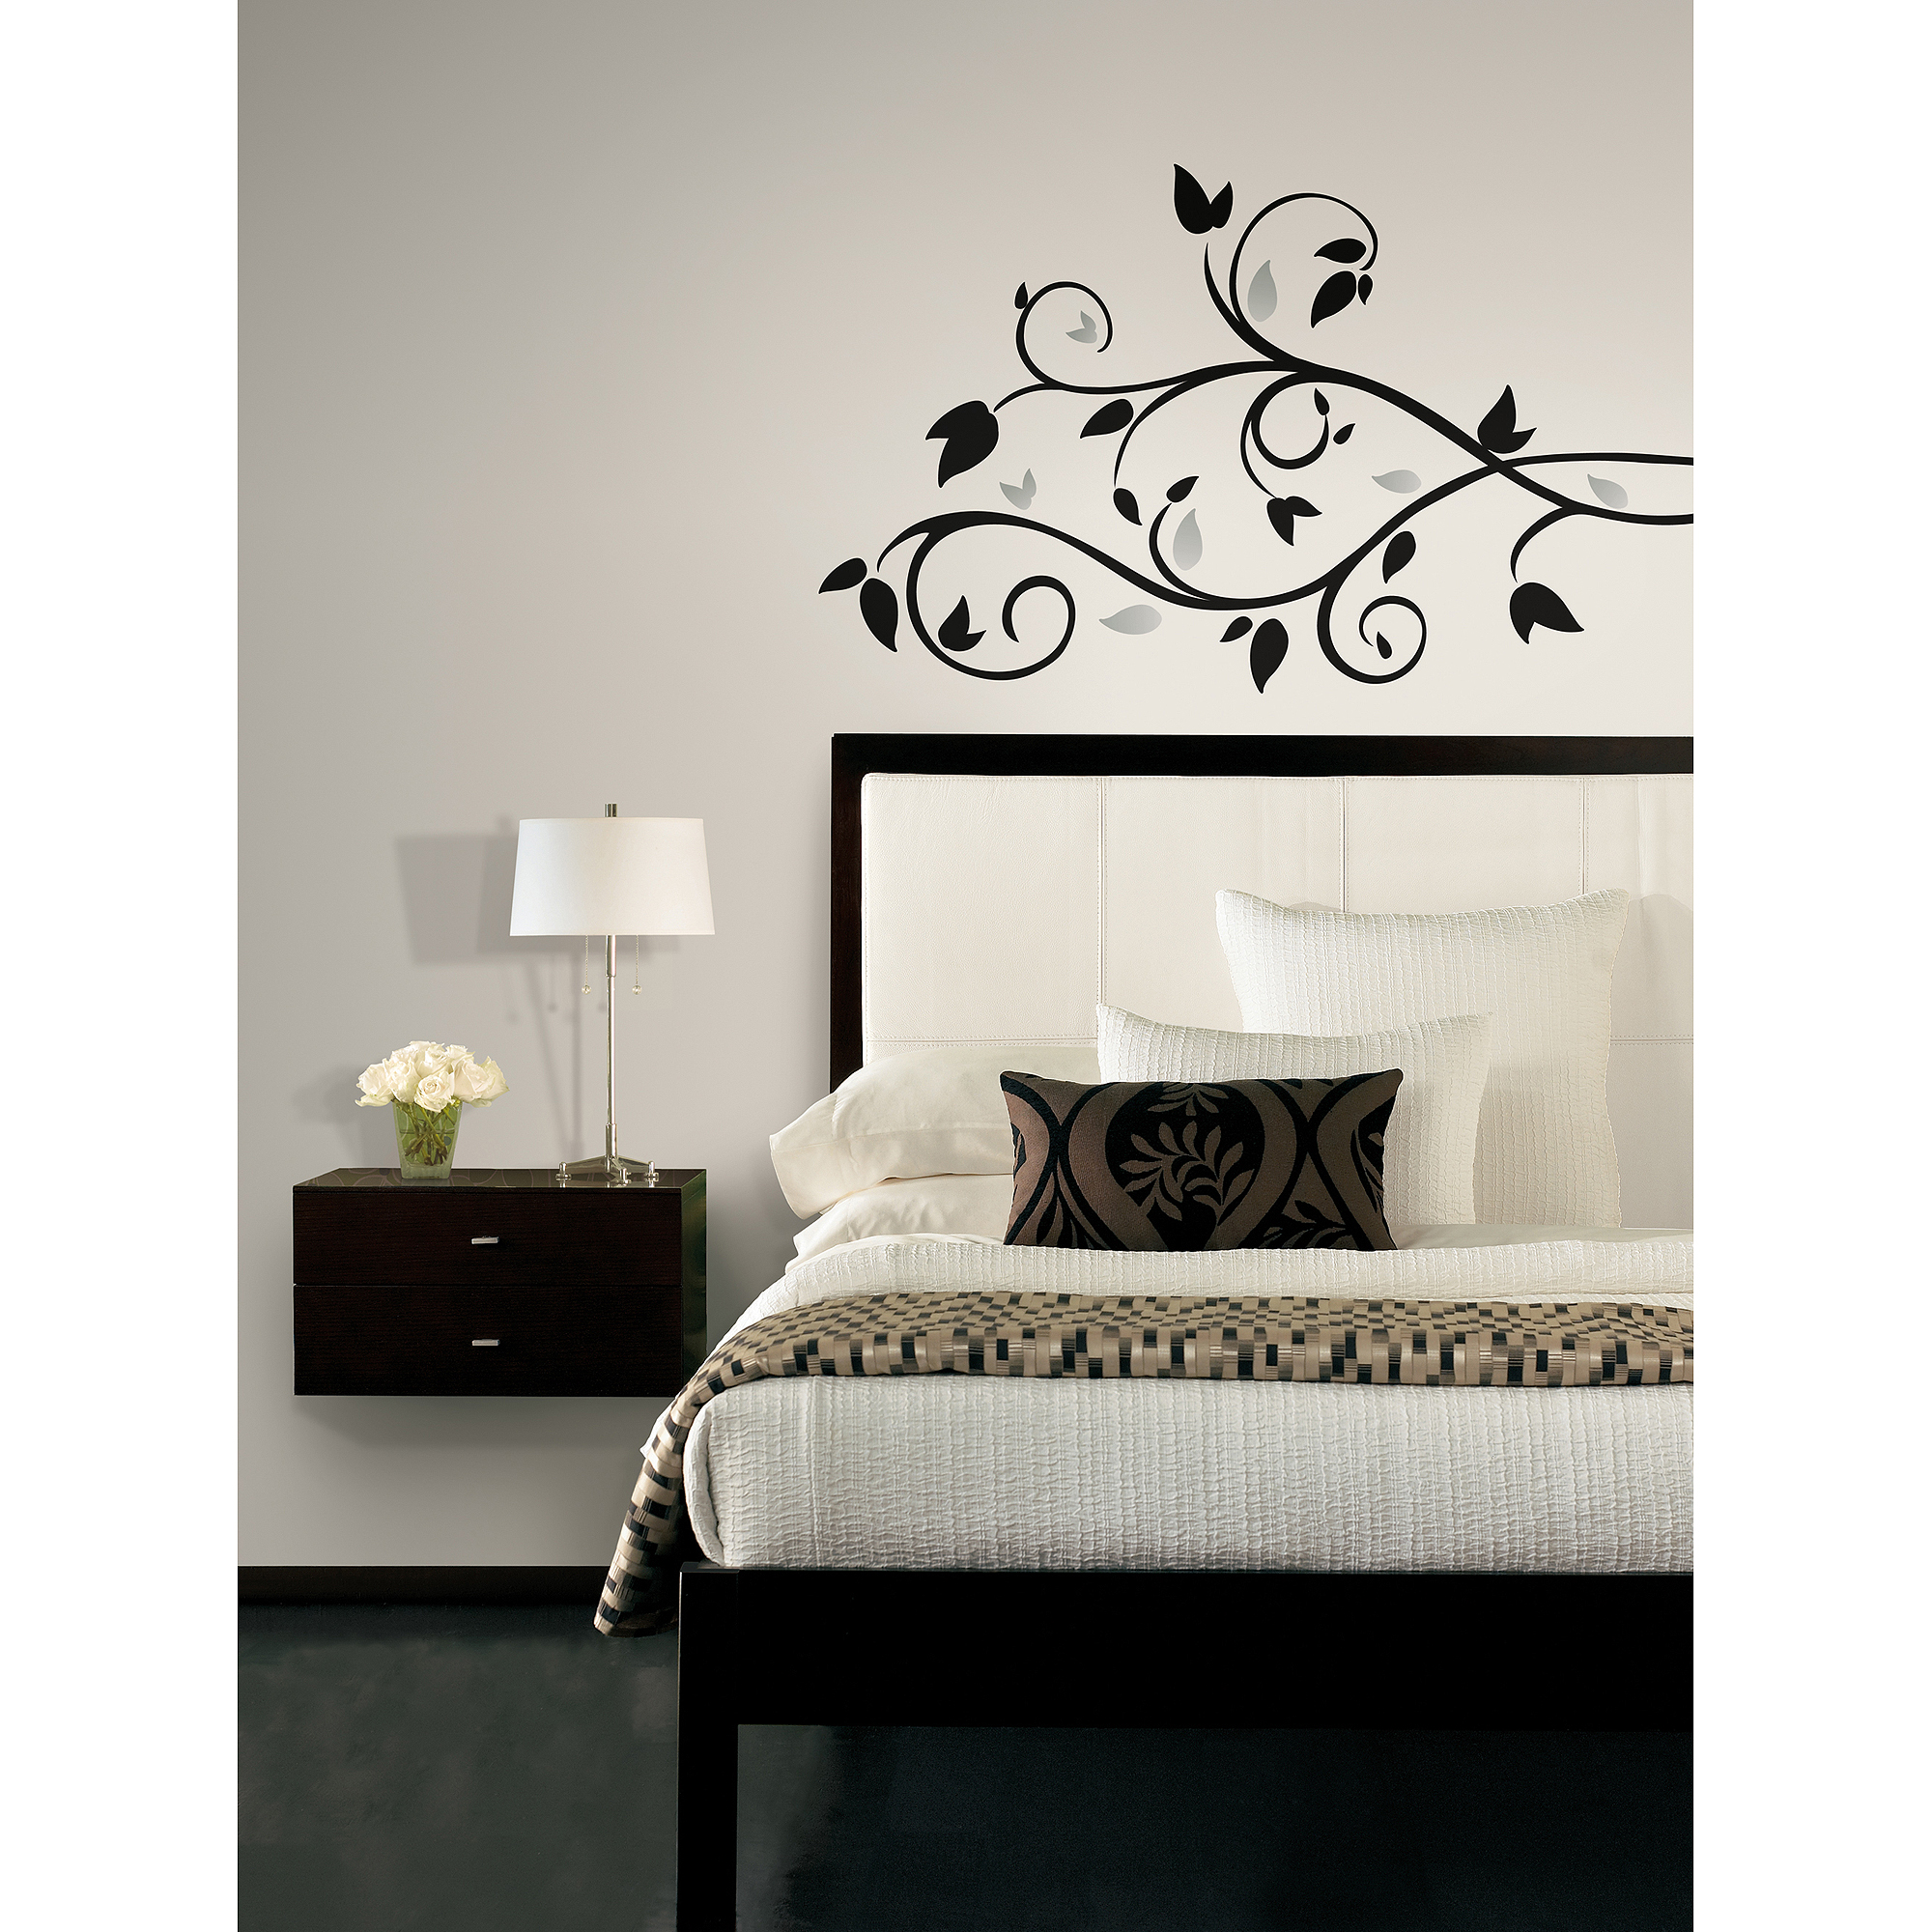 Charmant RoomMates Foil Tree Branch Peel And Stick Wall Decal   Walmart.com